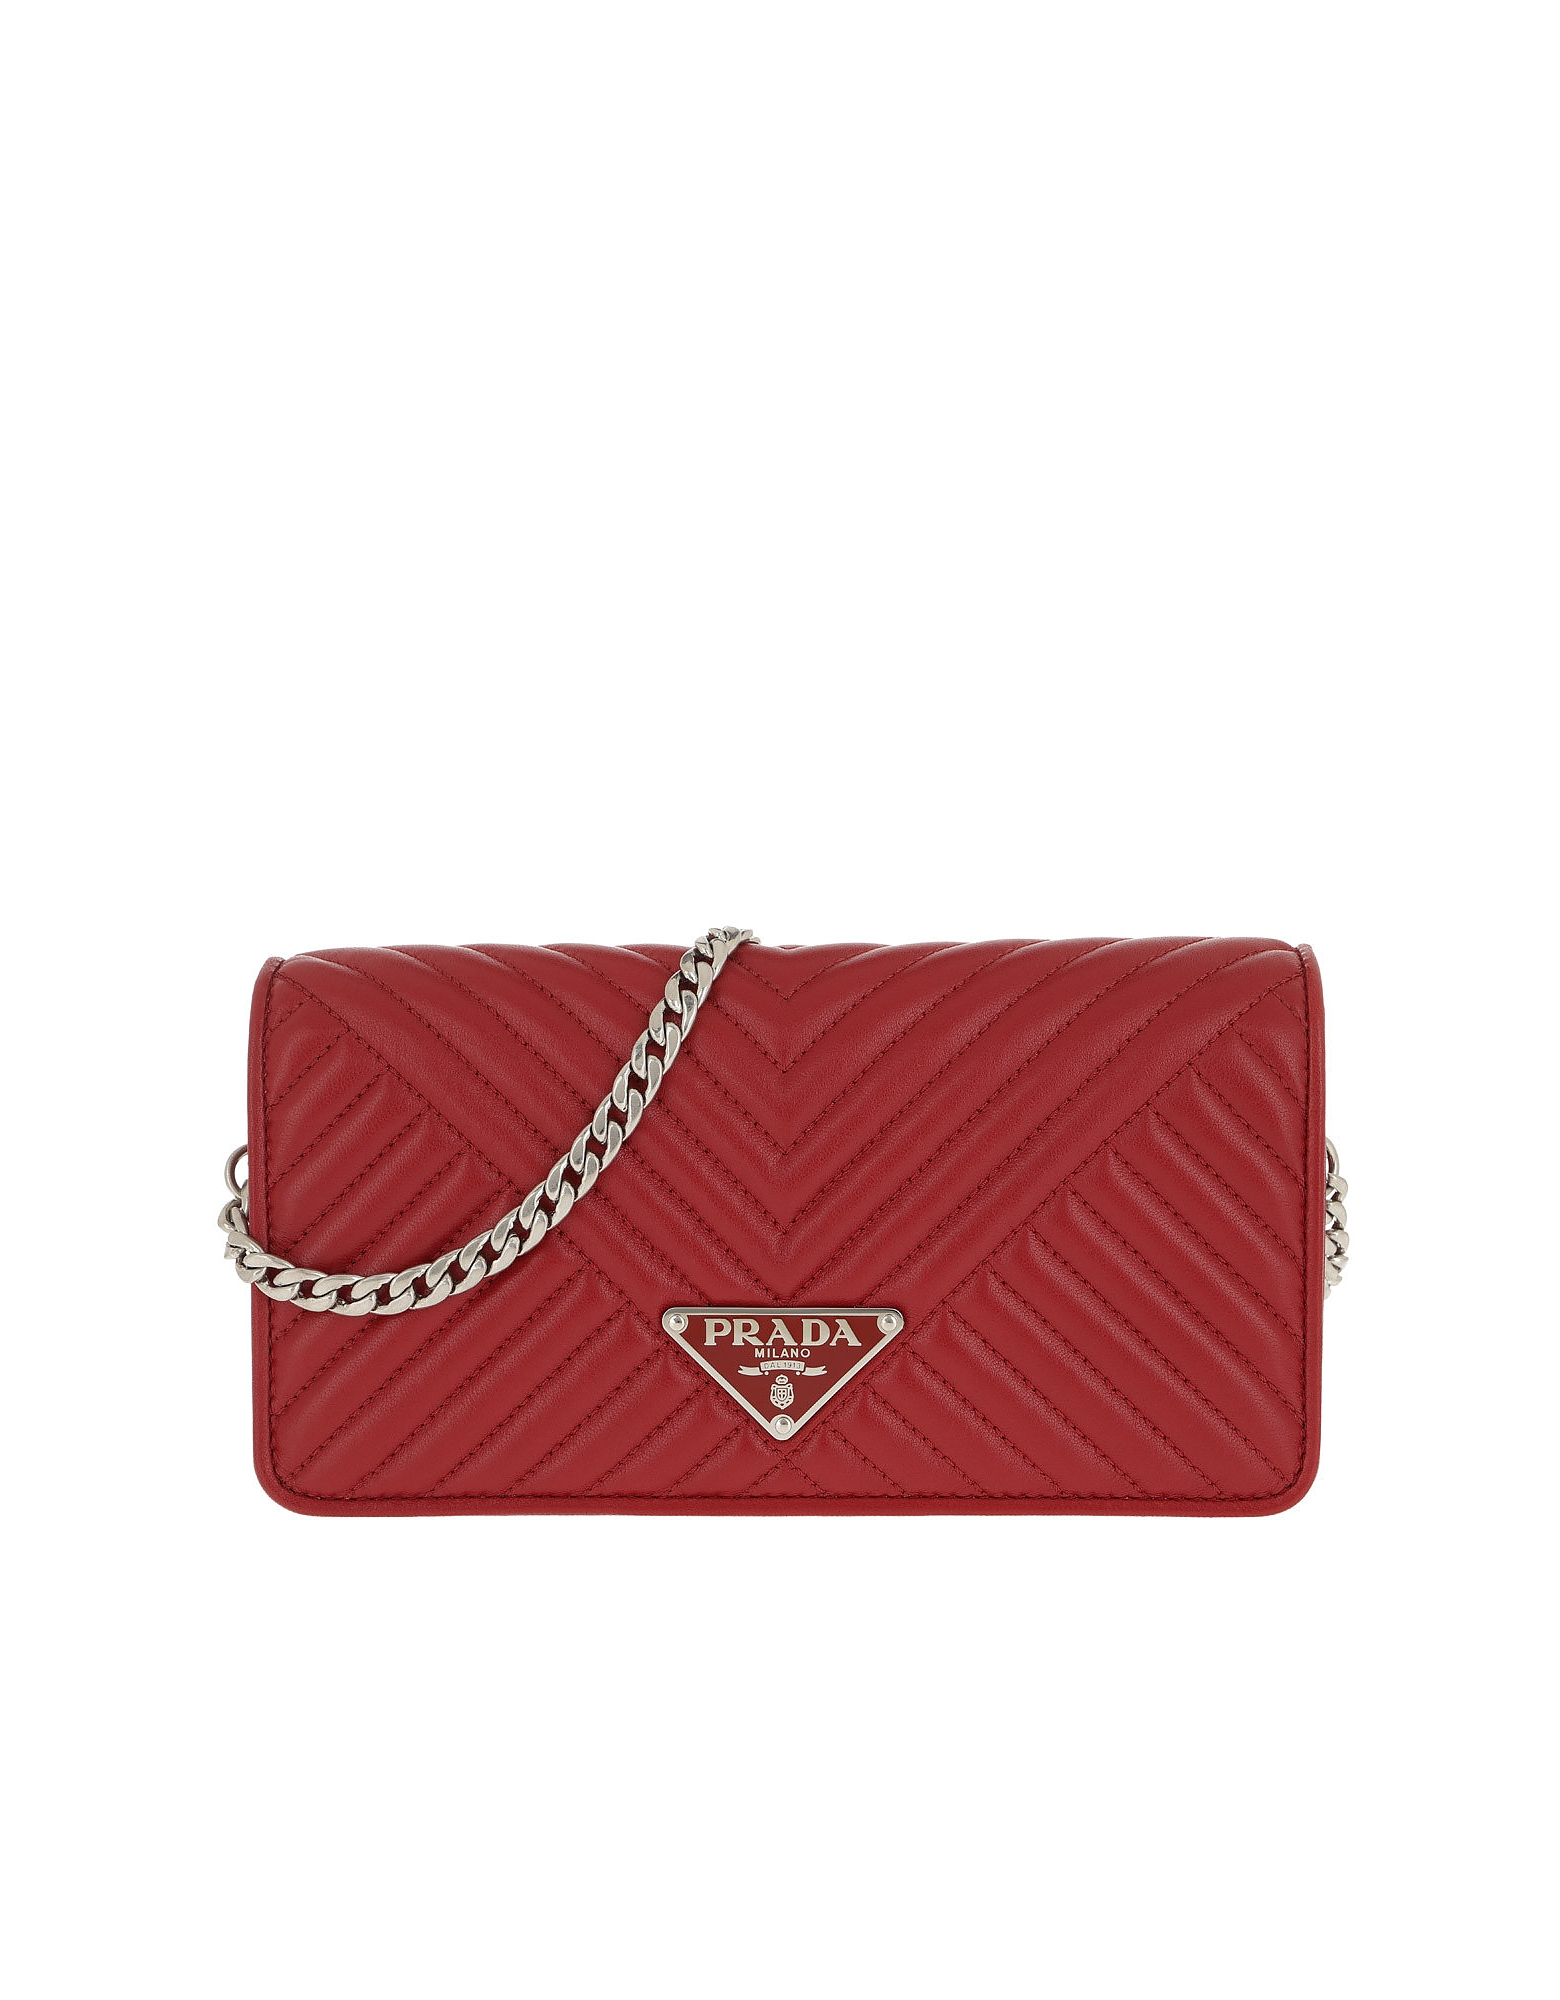 c0a0e9b7c57b89 Prada Mini Crossbody Bag Quilted Leather Red | ModeSens